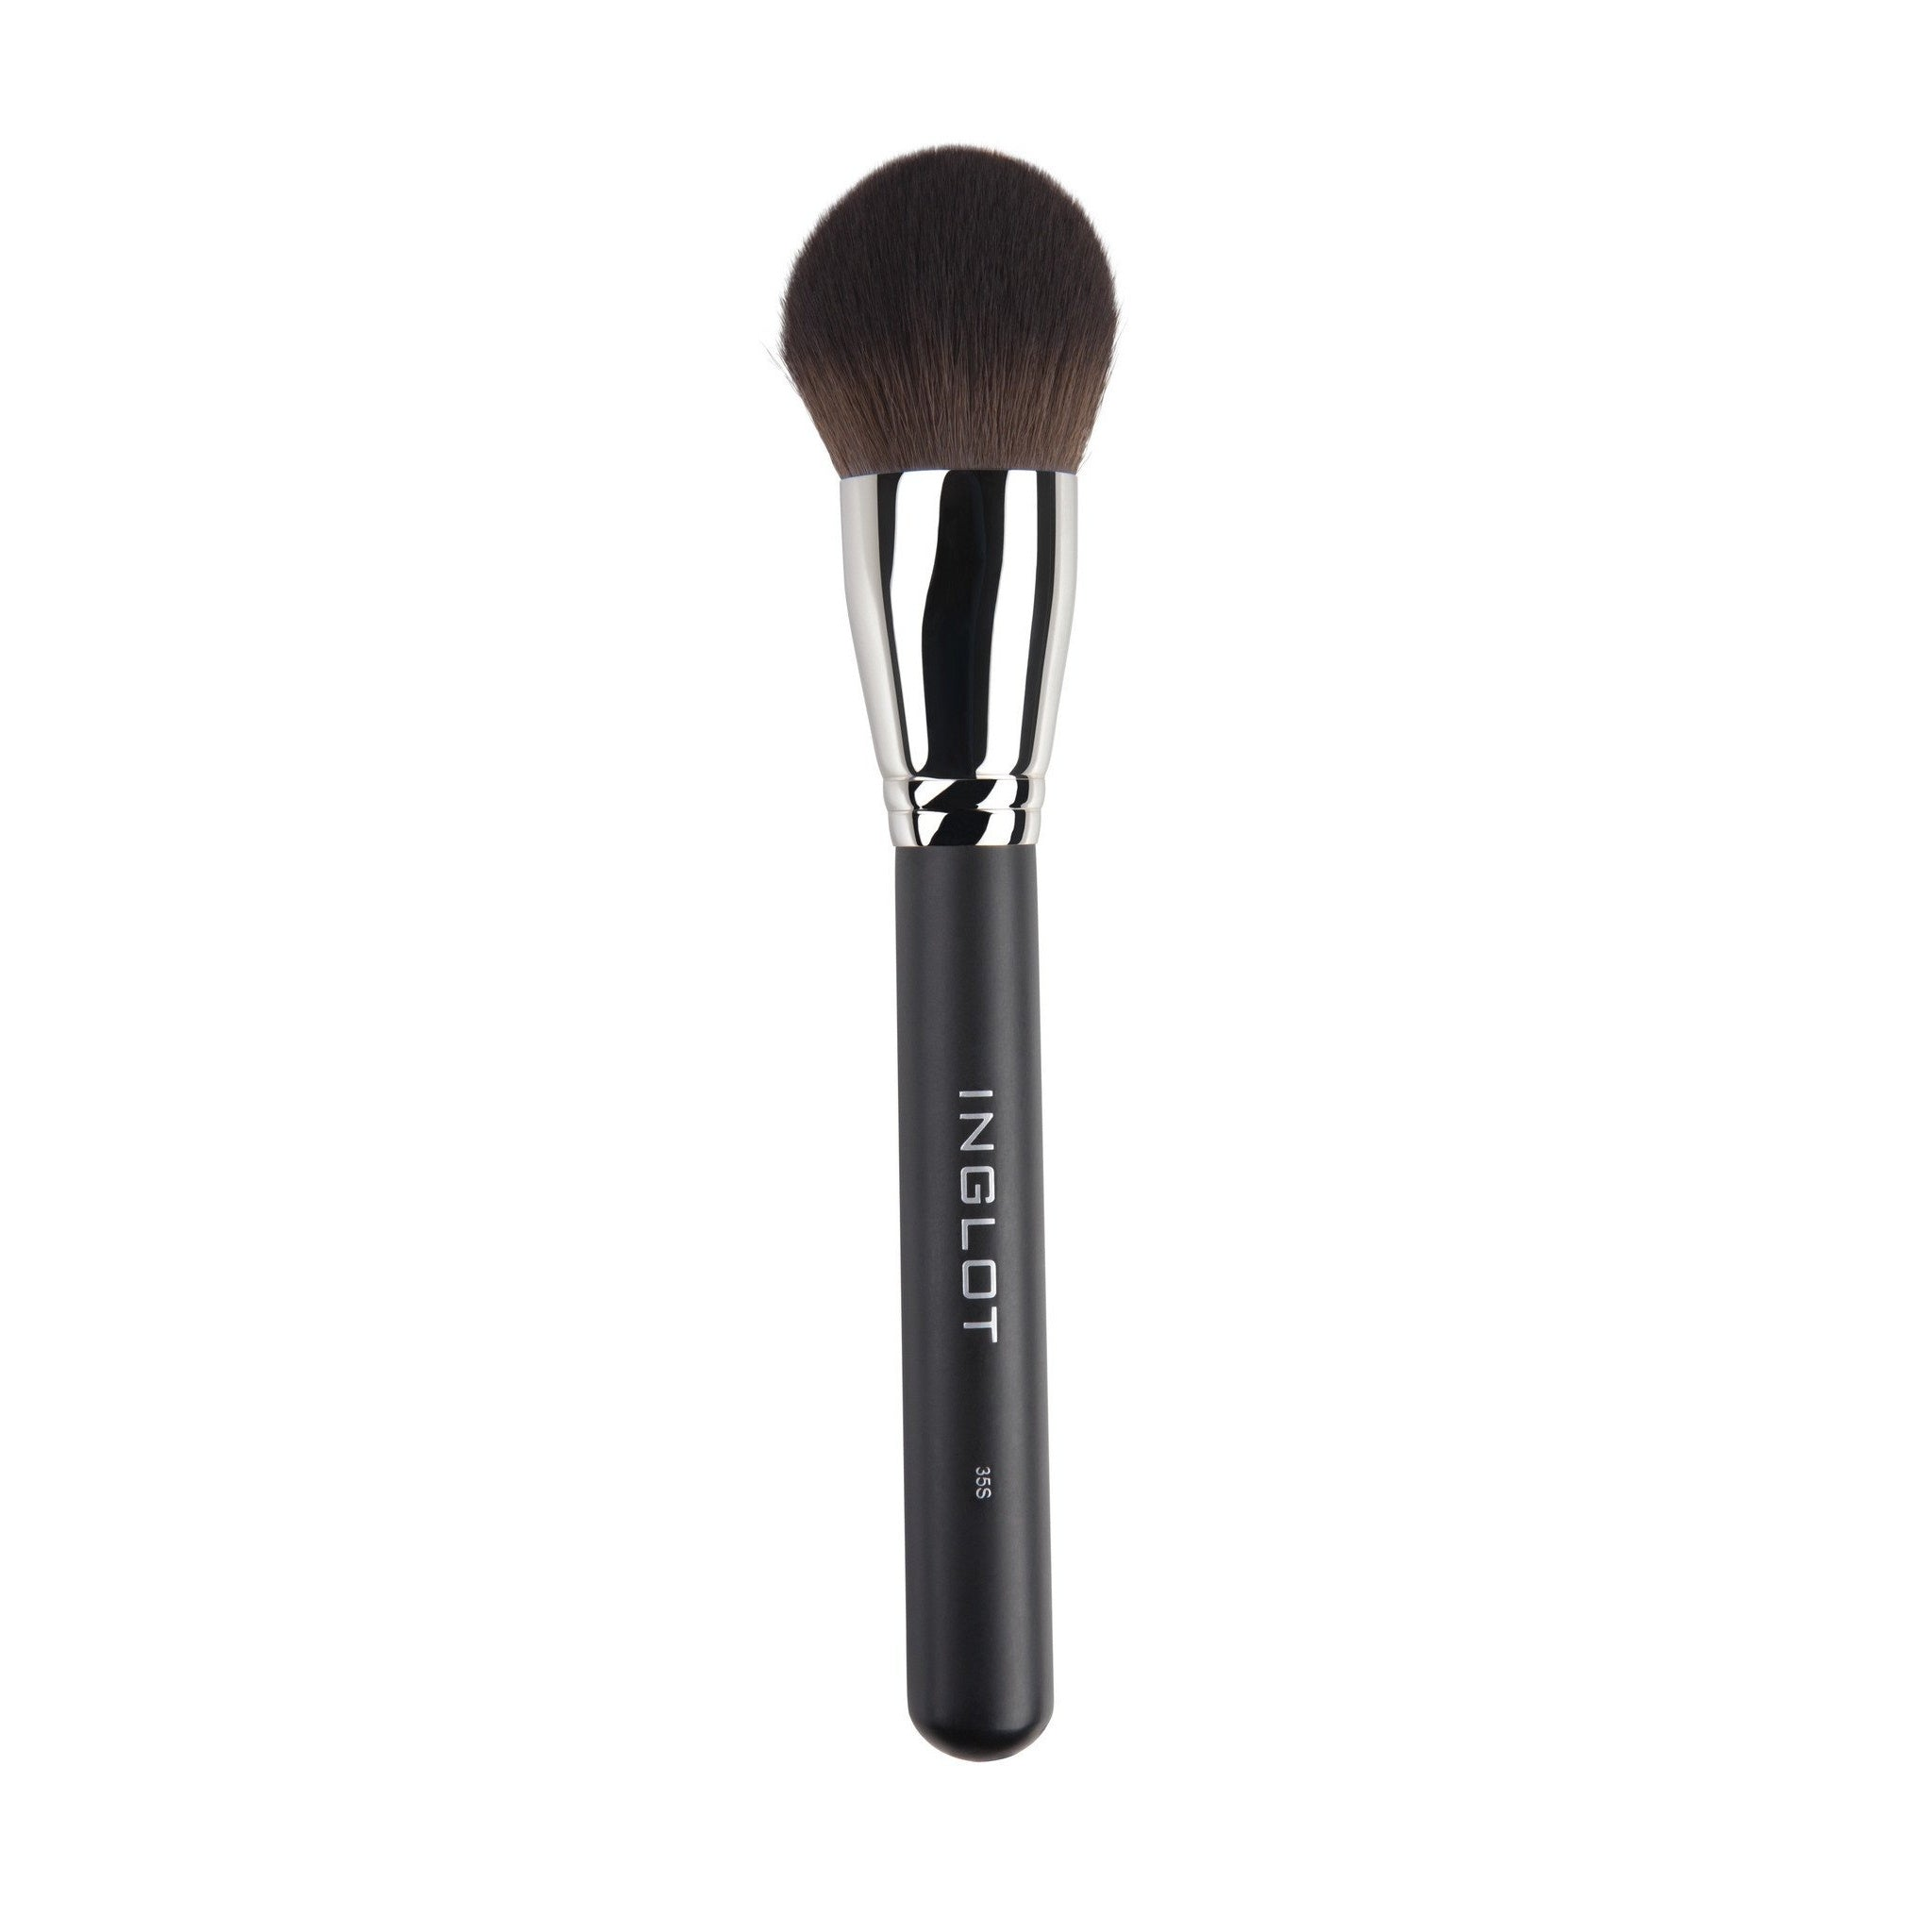 INGLOT Brush 35S - GetDollied Canada